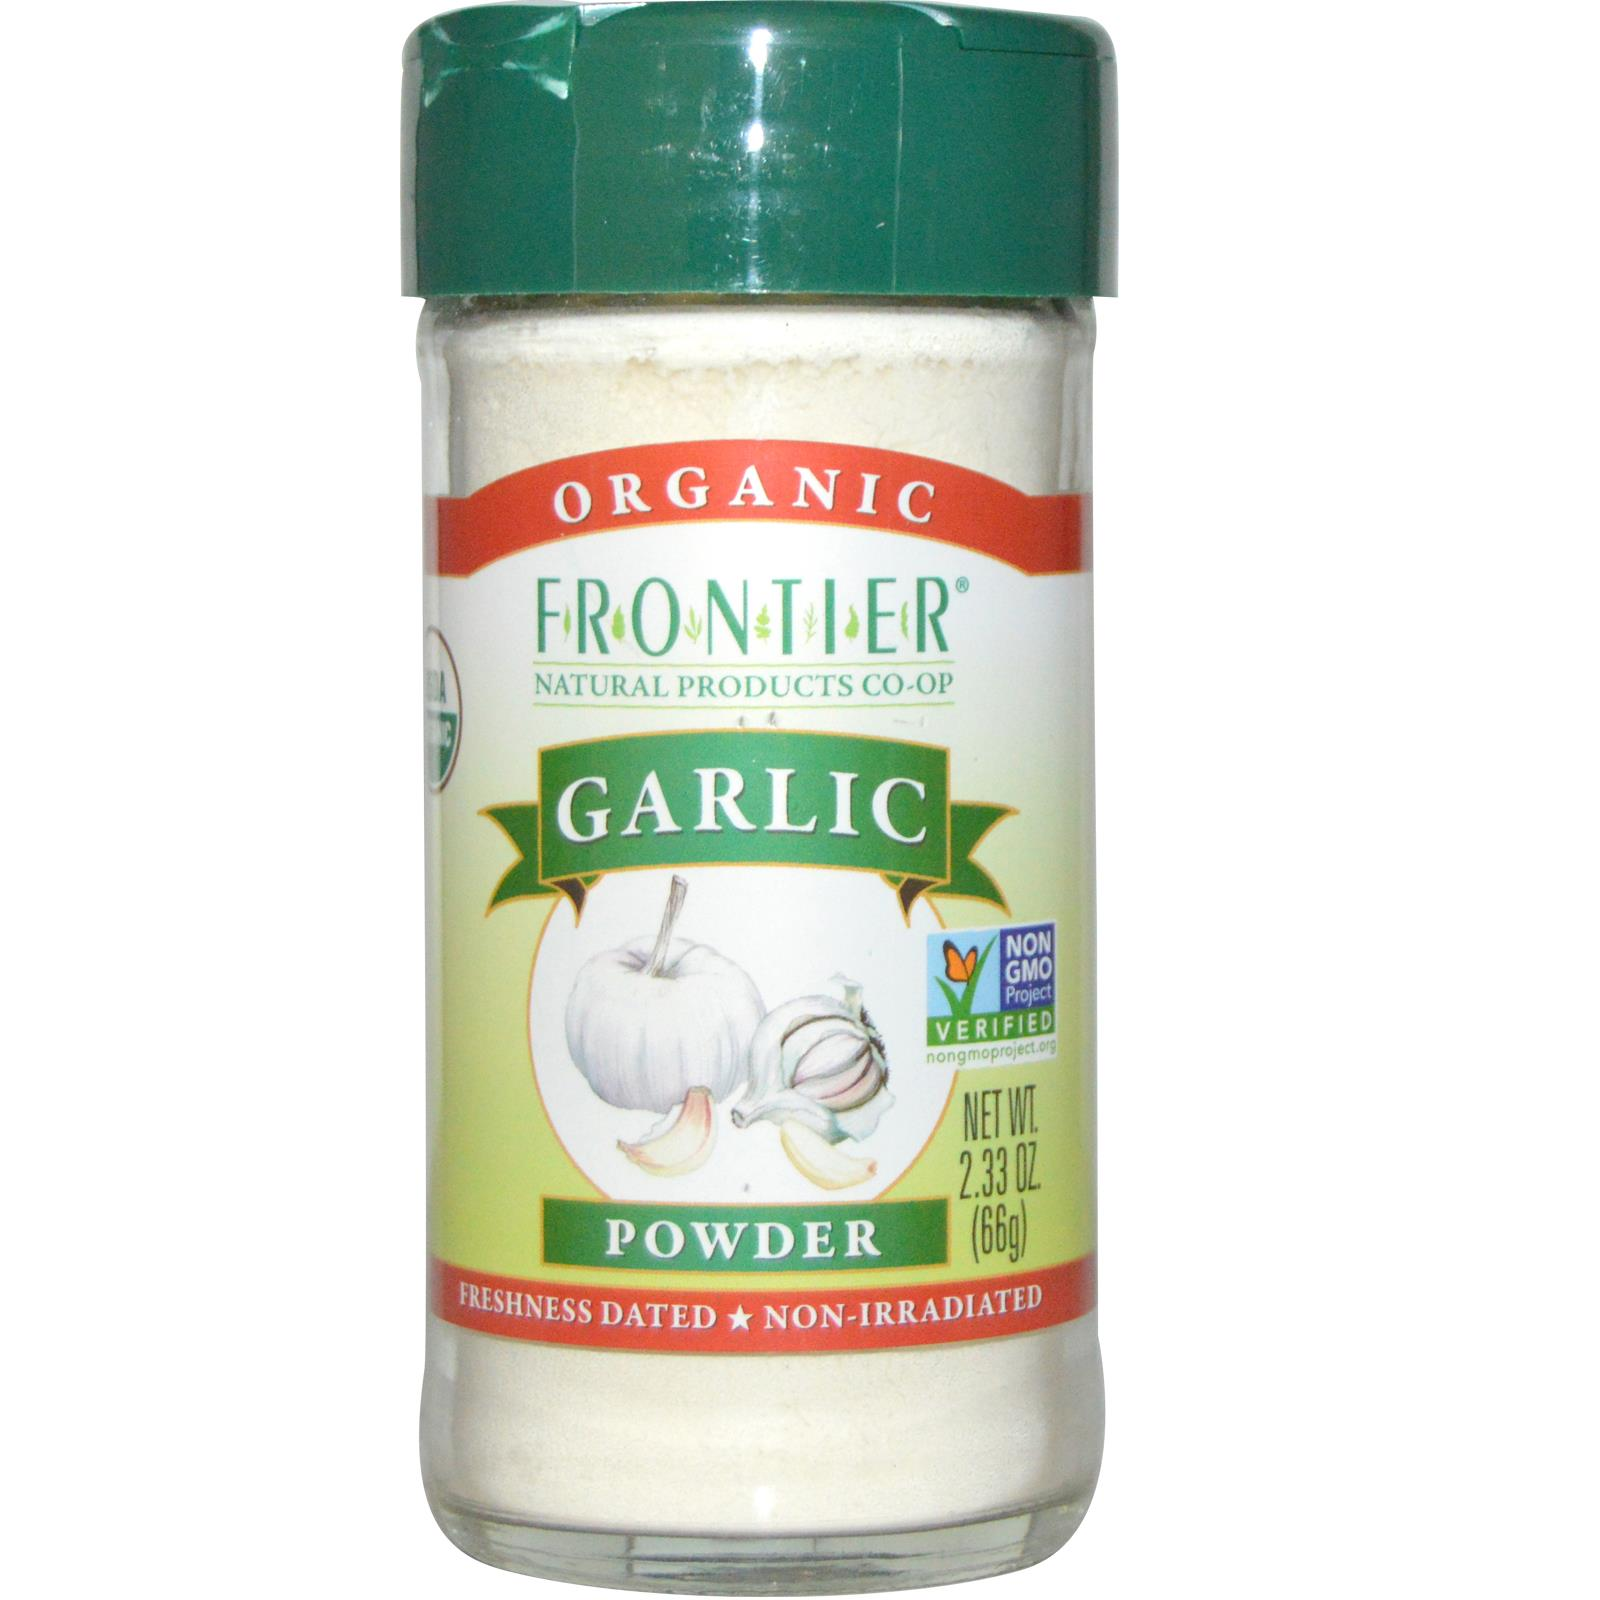 Frontier herb company